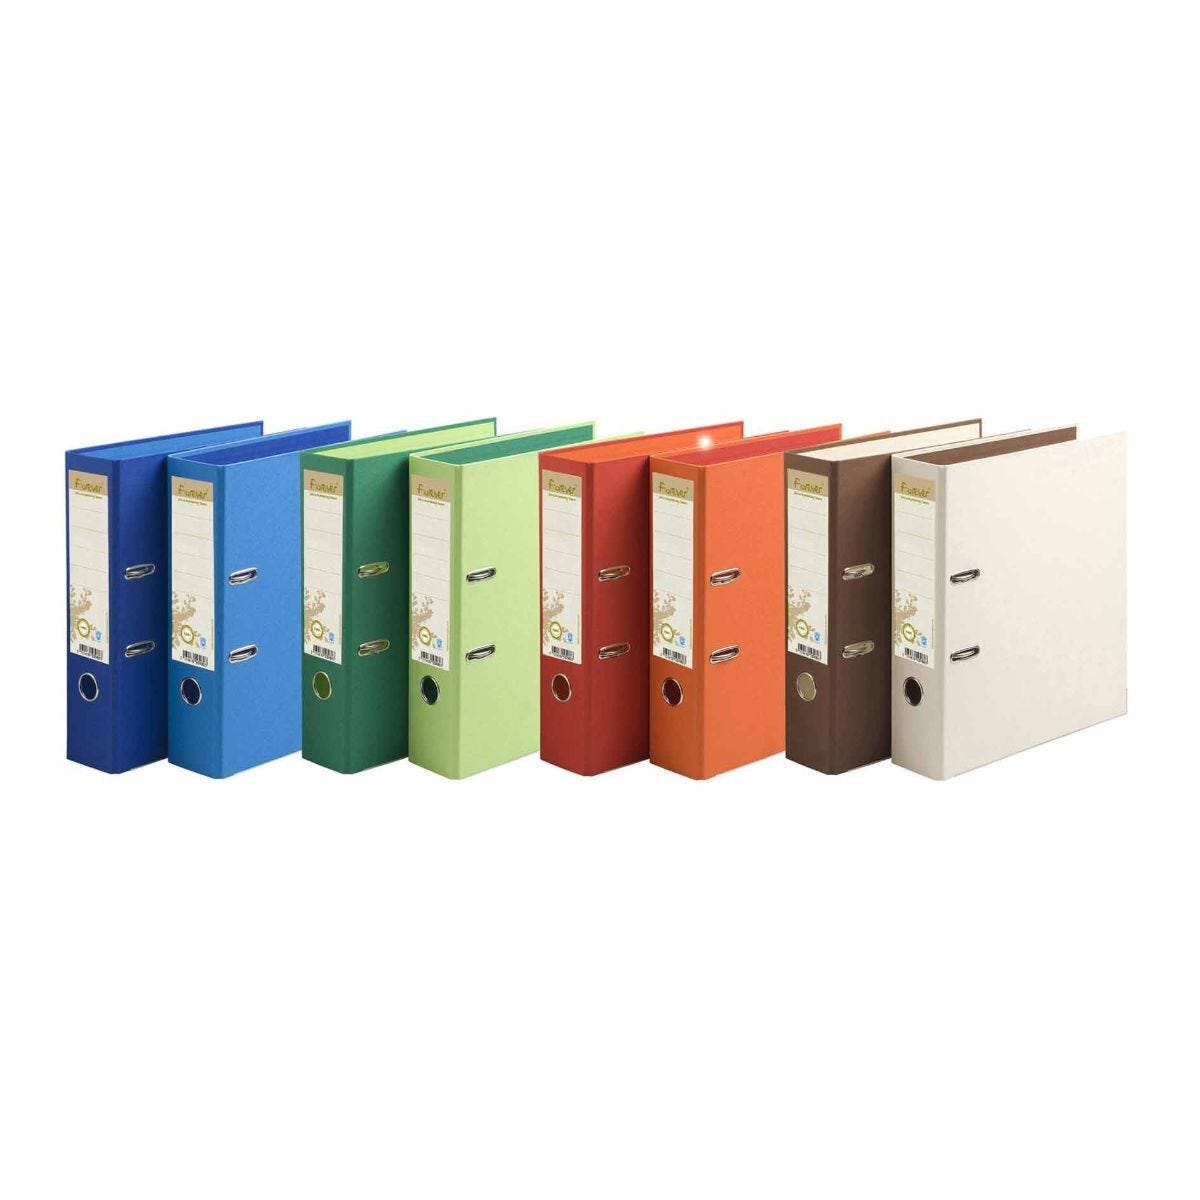 Exacompta Forever Lever Arch File A4 Pack of 10 Assorted